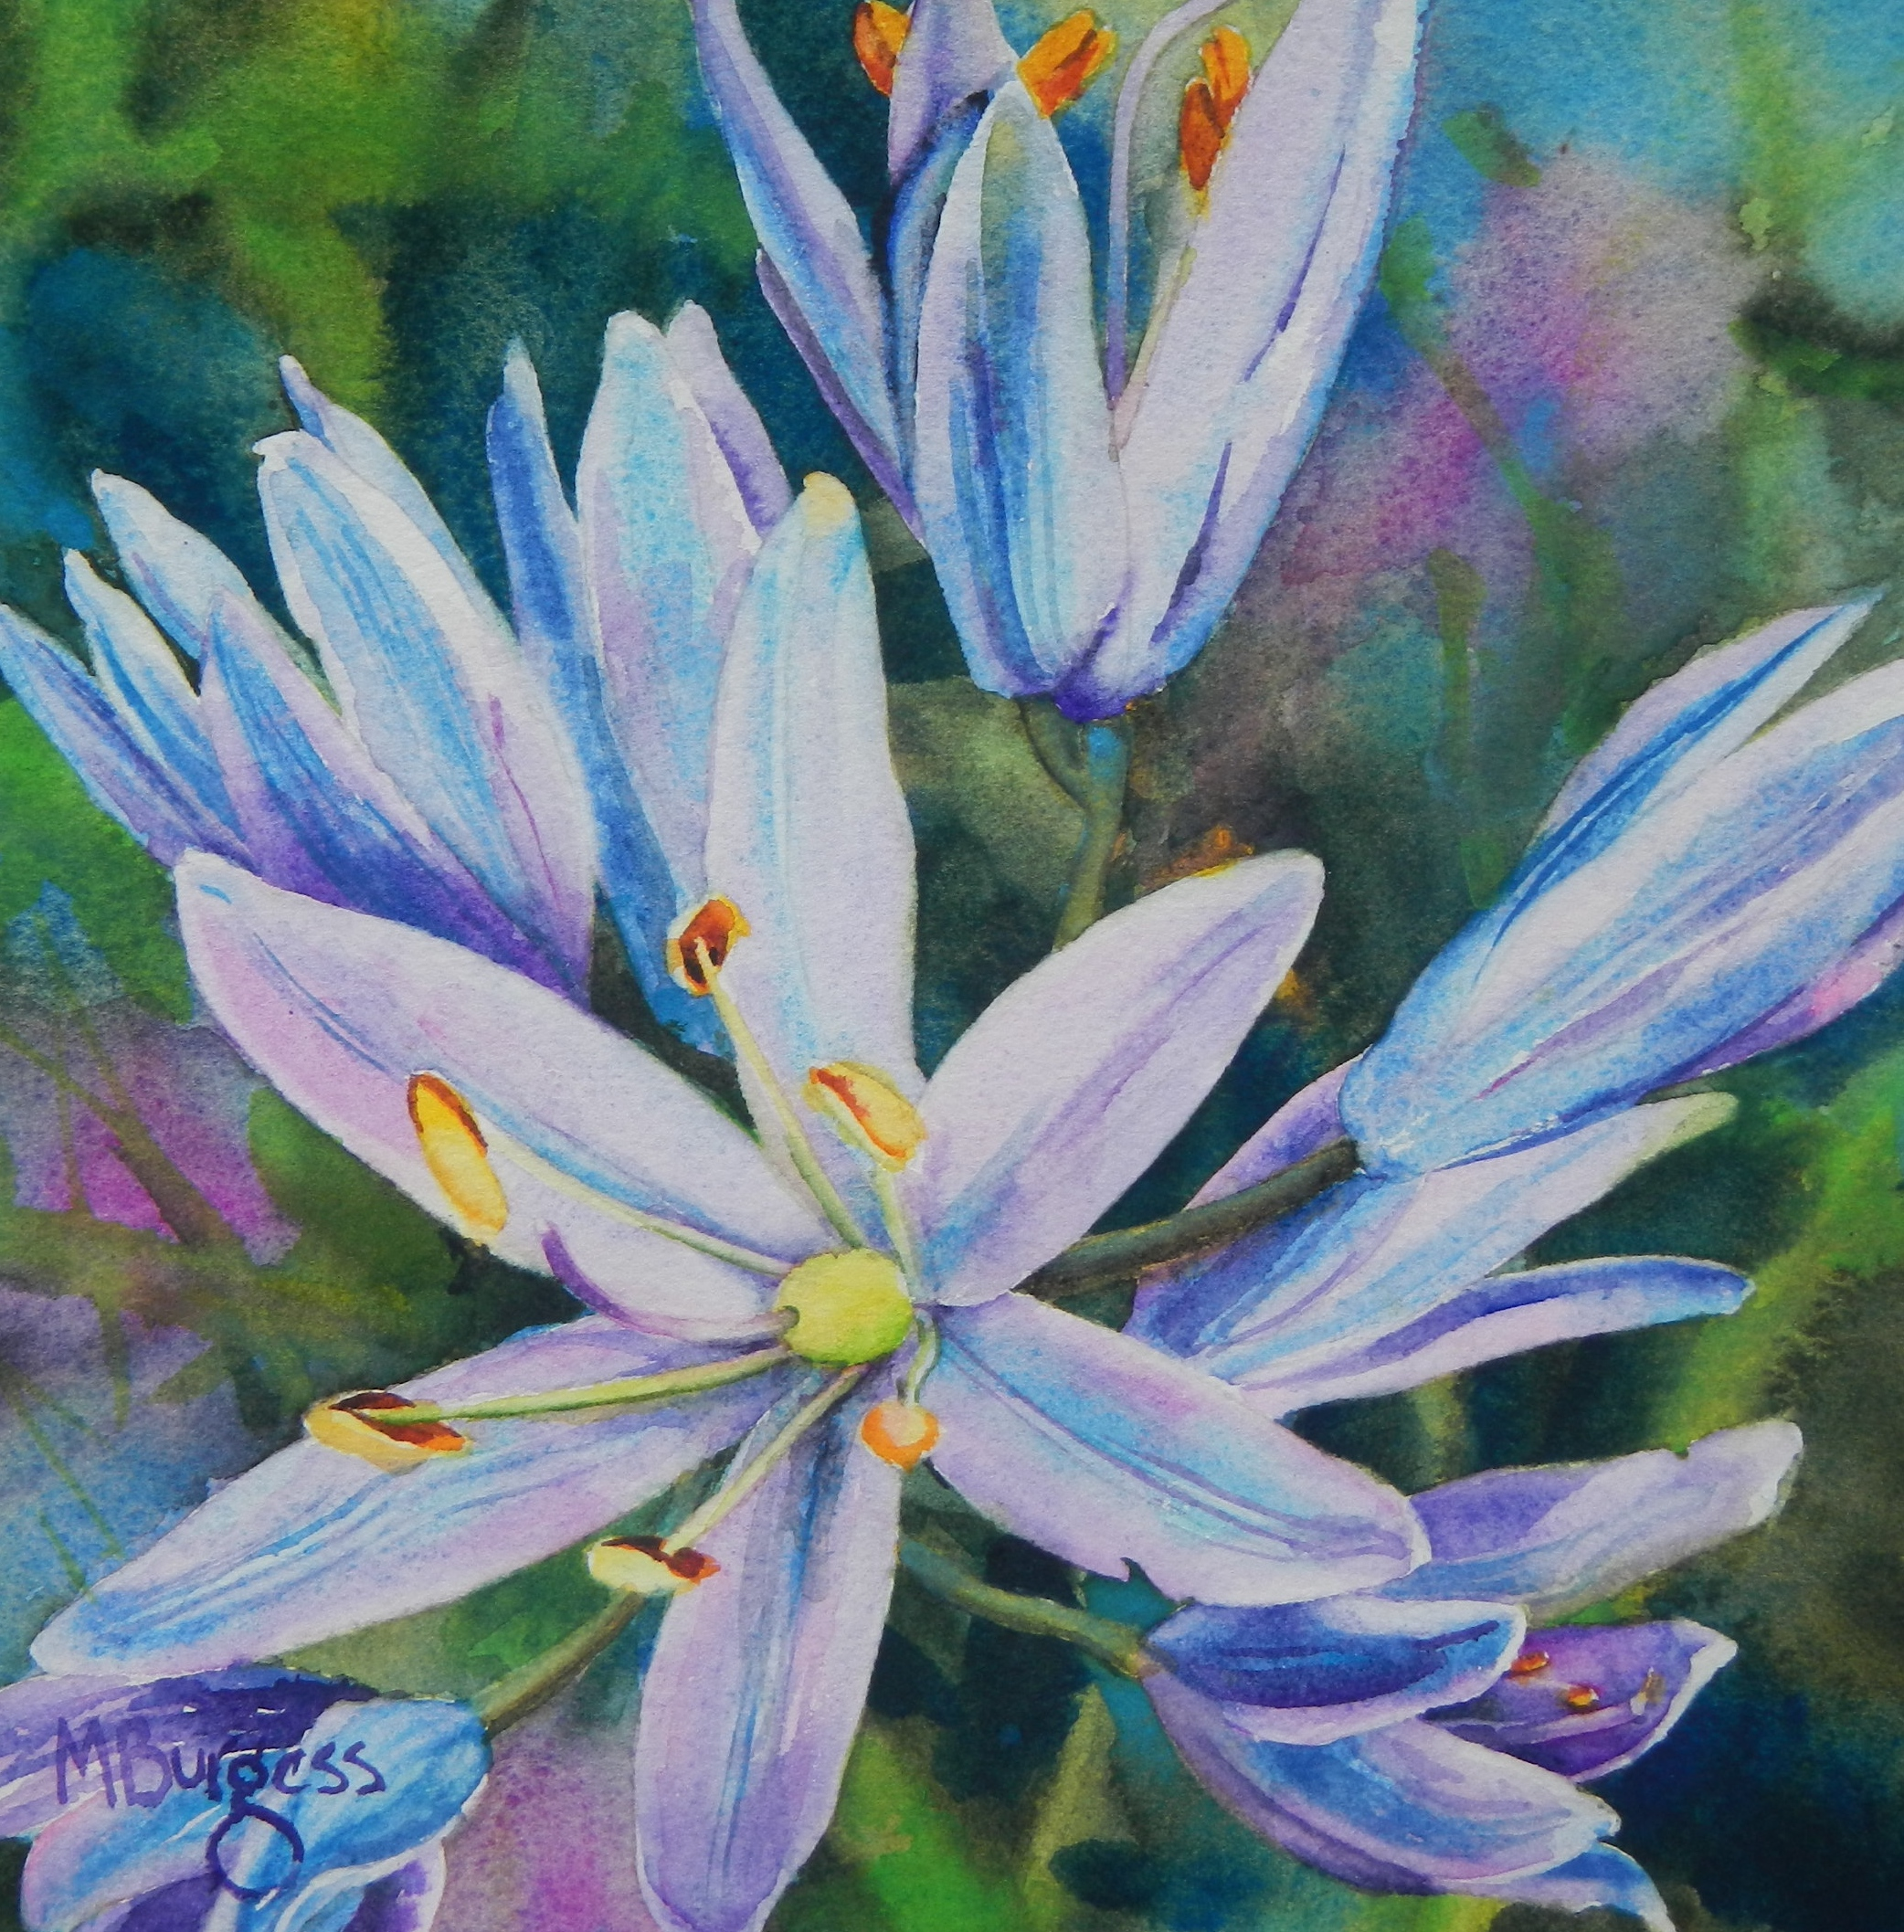 Burgess-Camassia Quamash-Watercolor